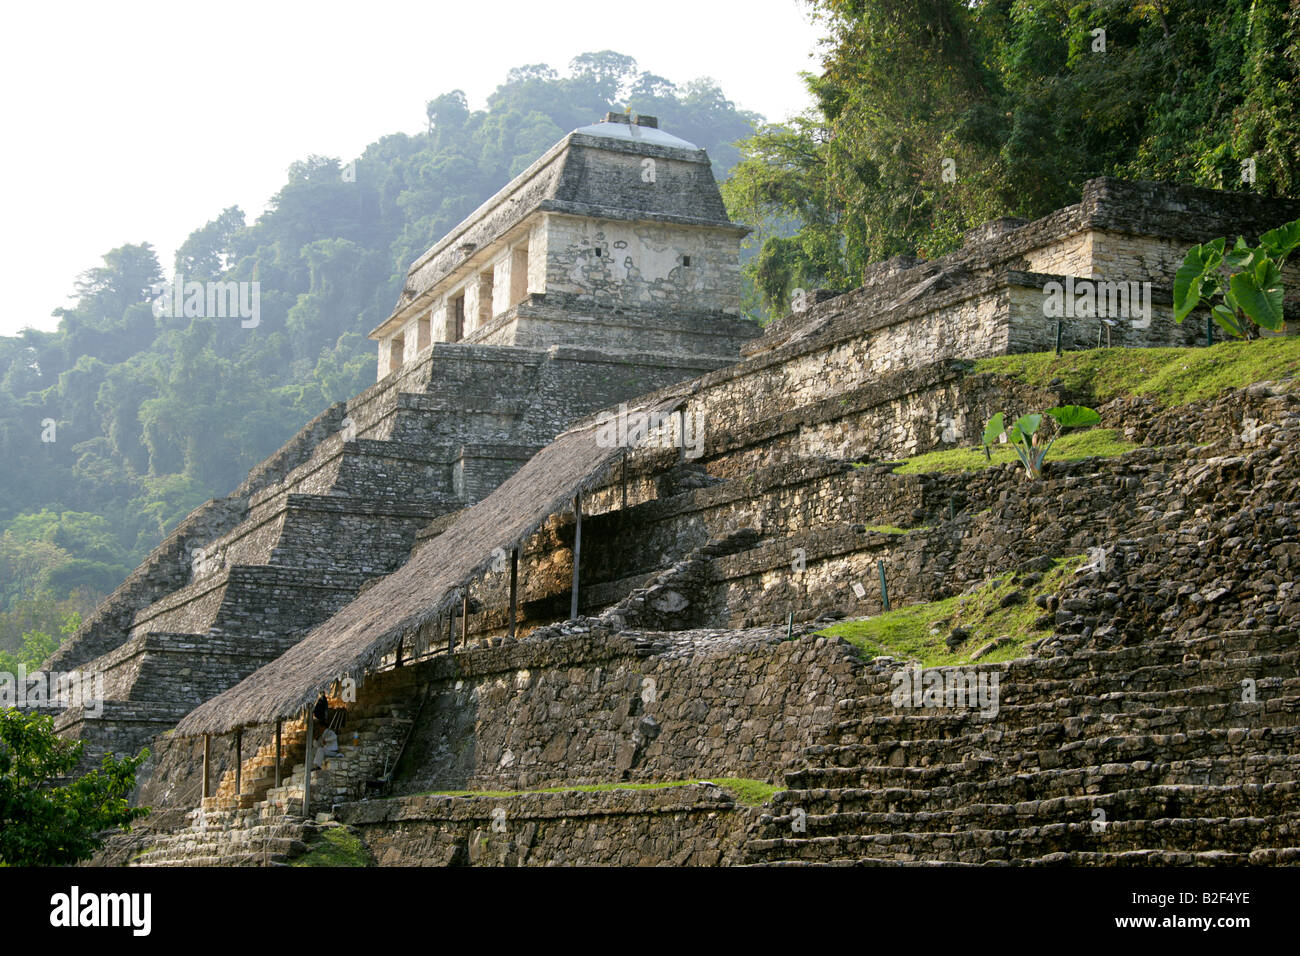 Temple of Inscriptions and Temple XIII, Palenque Archeological Site, Chiapas State, Mexico. Stock Photo